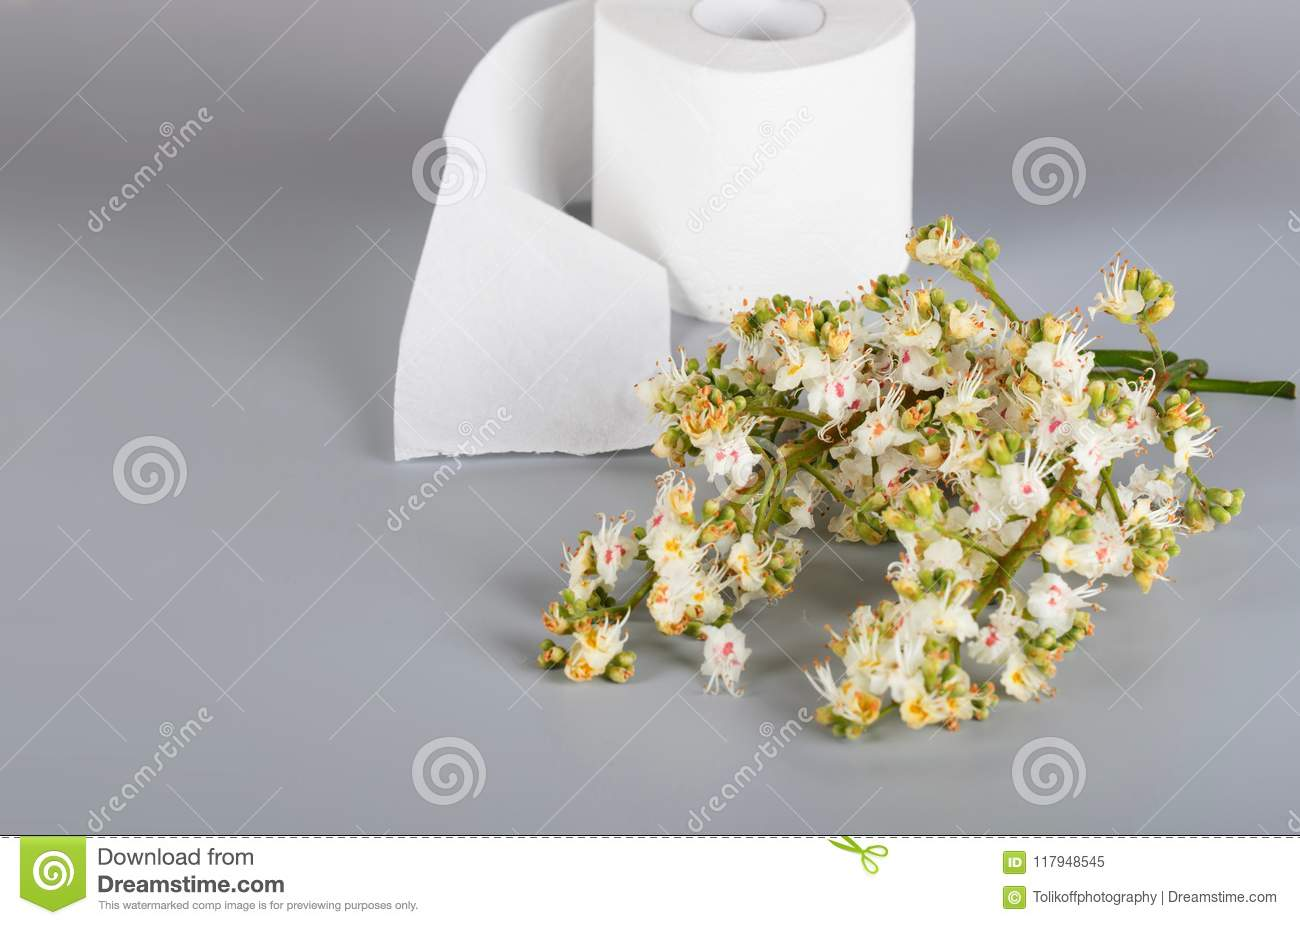 Horse Chestnut Flowers On A Gray Surface Roll Of Toilet Paper I